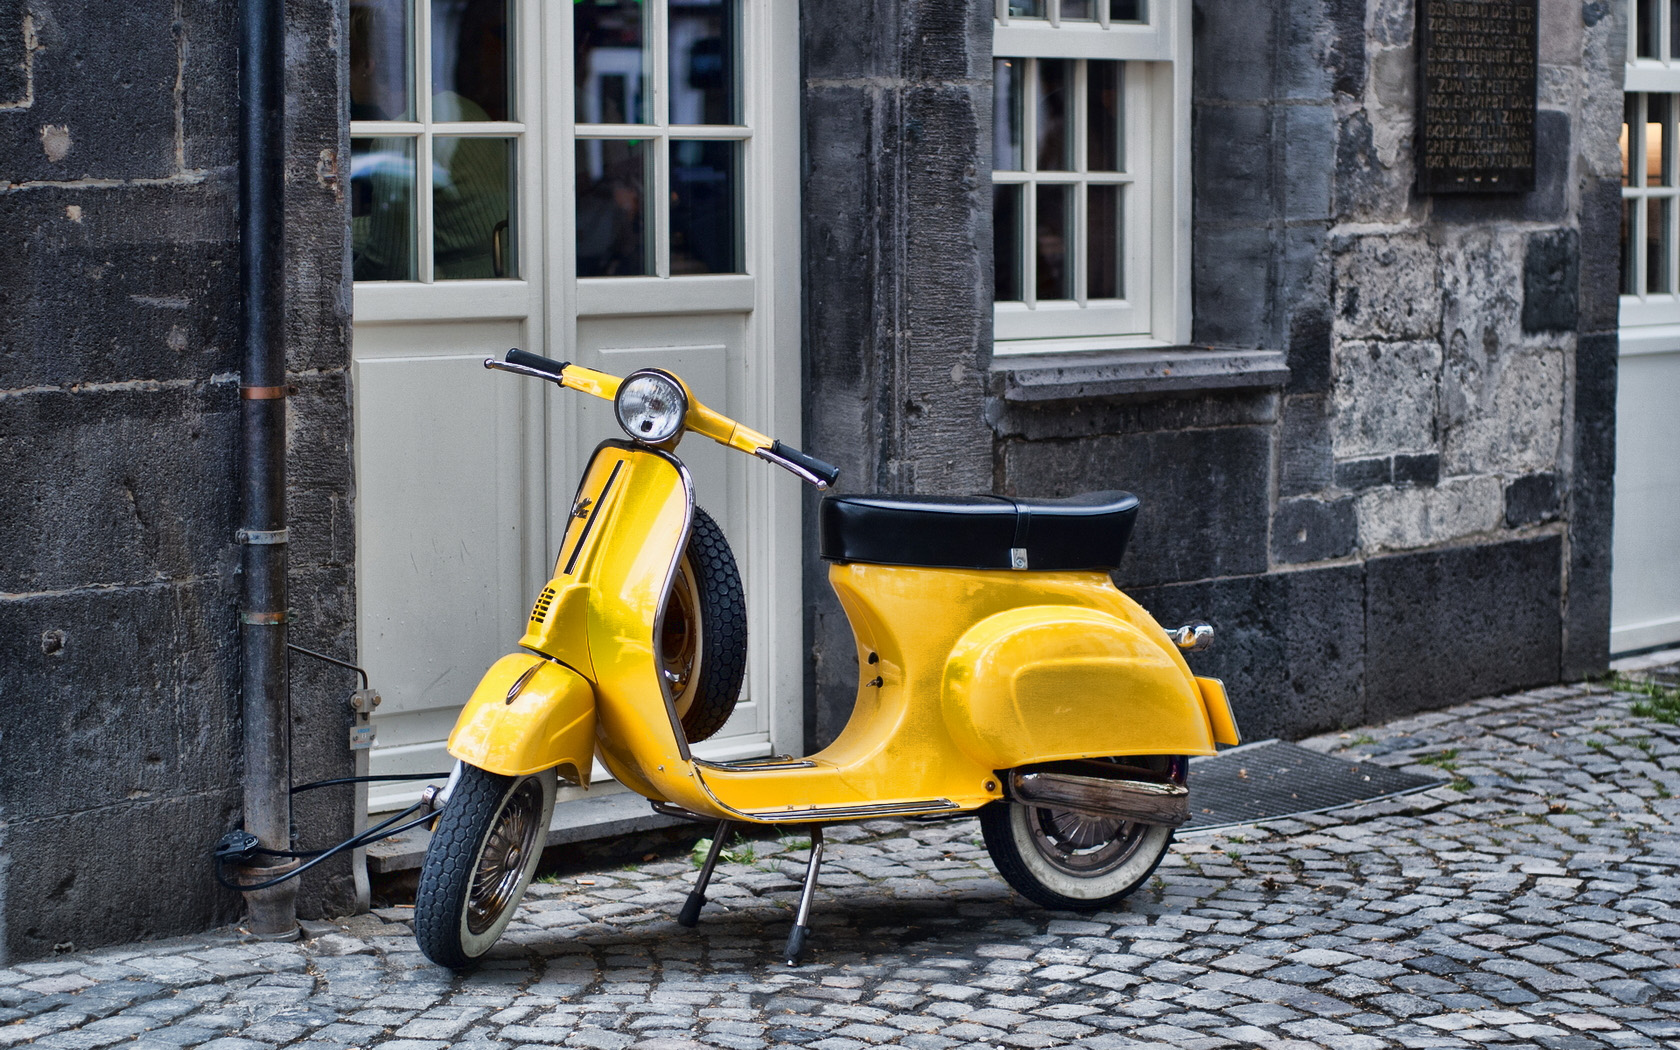 Scooter Wallpaper and Background Image   1680x1050   ID ...